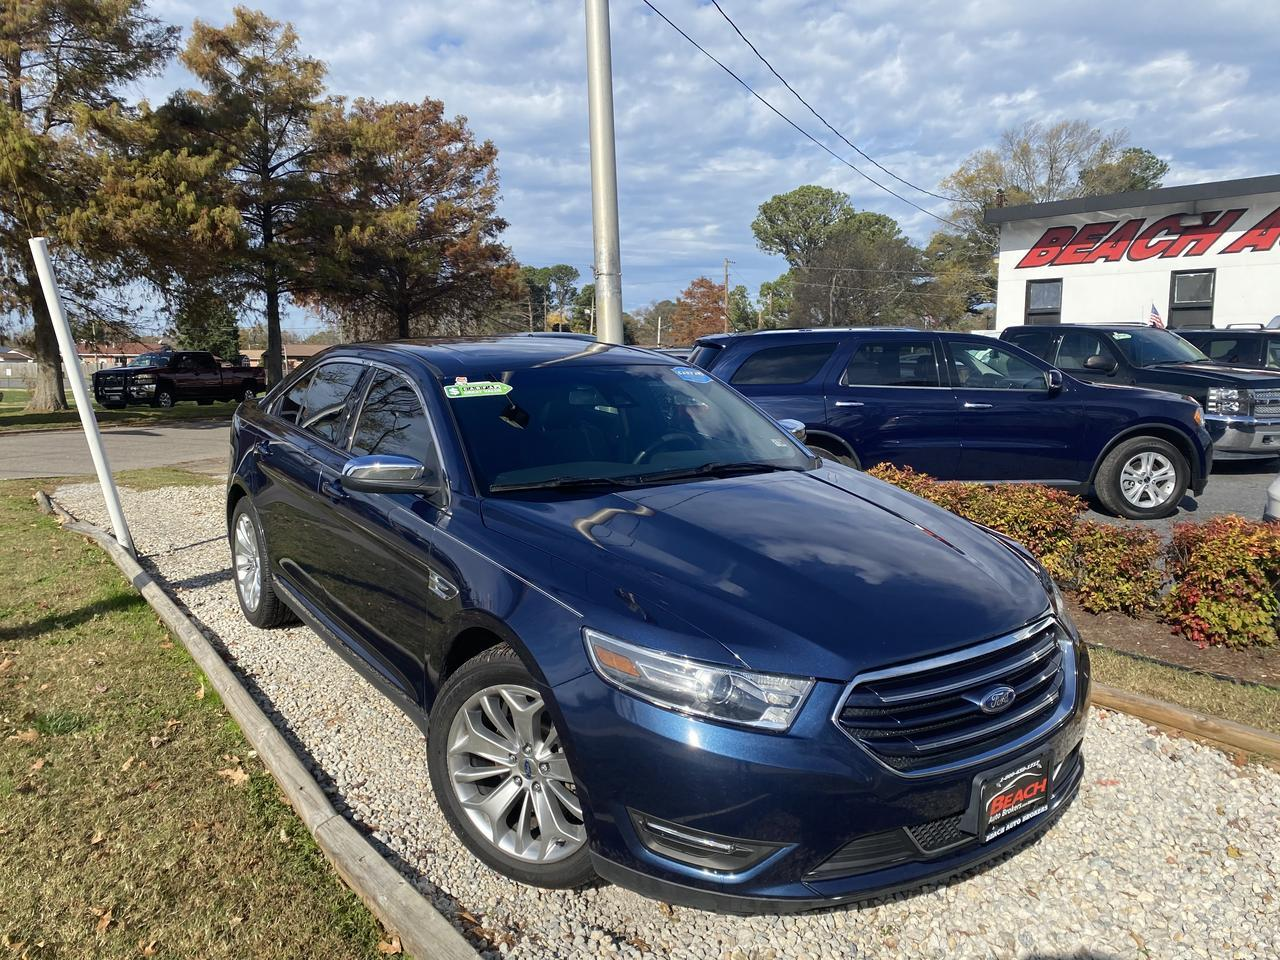 2017 FORD TAURUS LIMITED, WARRANTY, LEATHER, NAV, SUNROOF, HEATED/COOLED SEATS, BLUETOOTH, CLEAN CARFAX! Norfolk VA